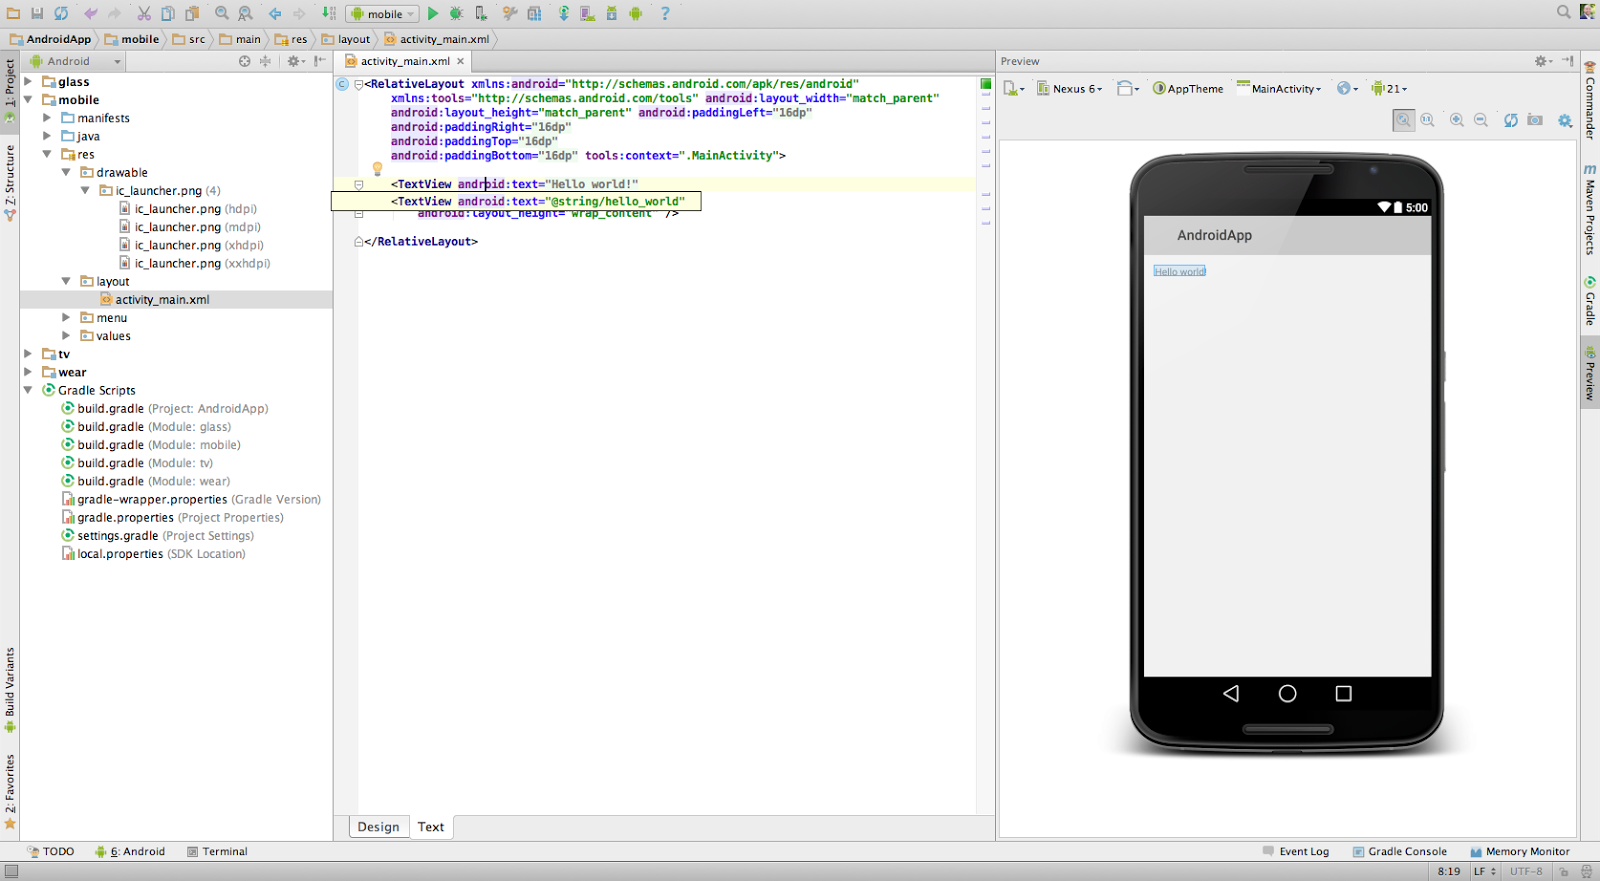 Elite Technologies: HB Blog 91: Android Studio's Attractive Features